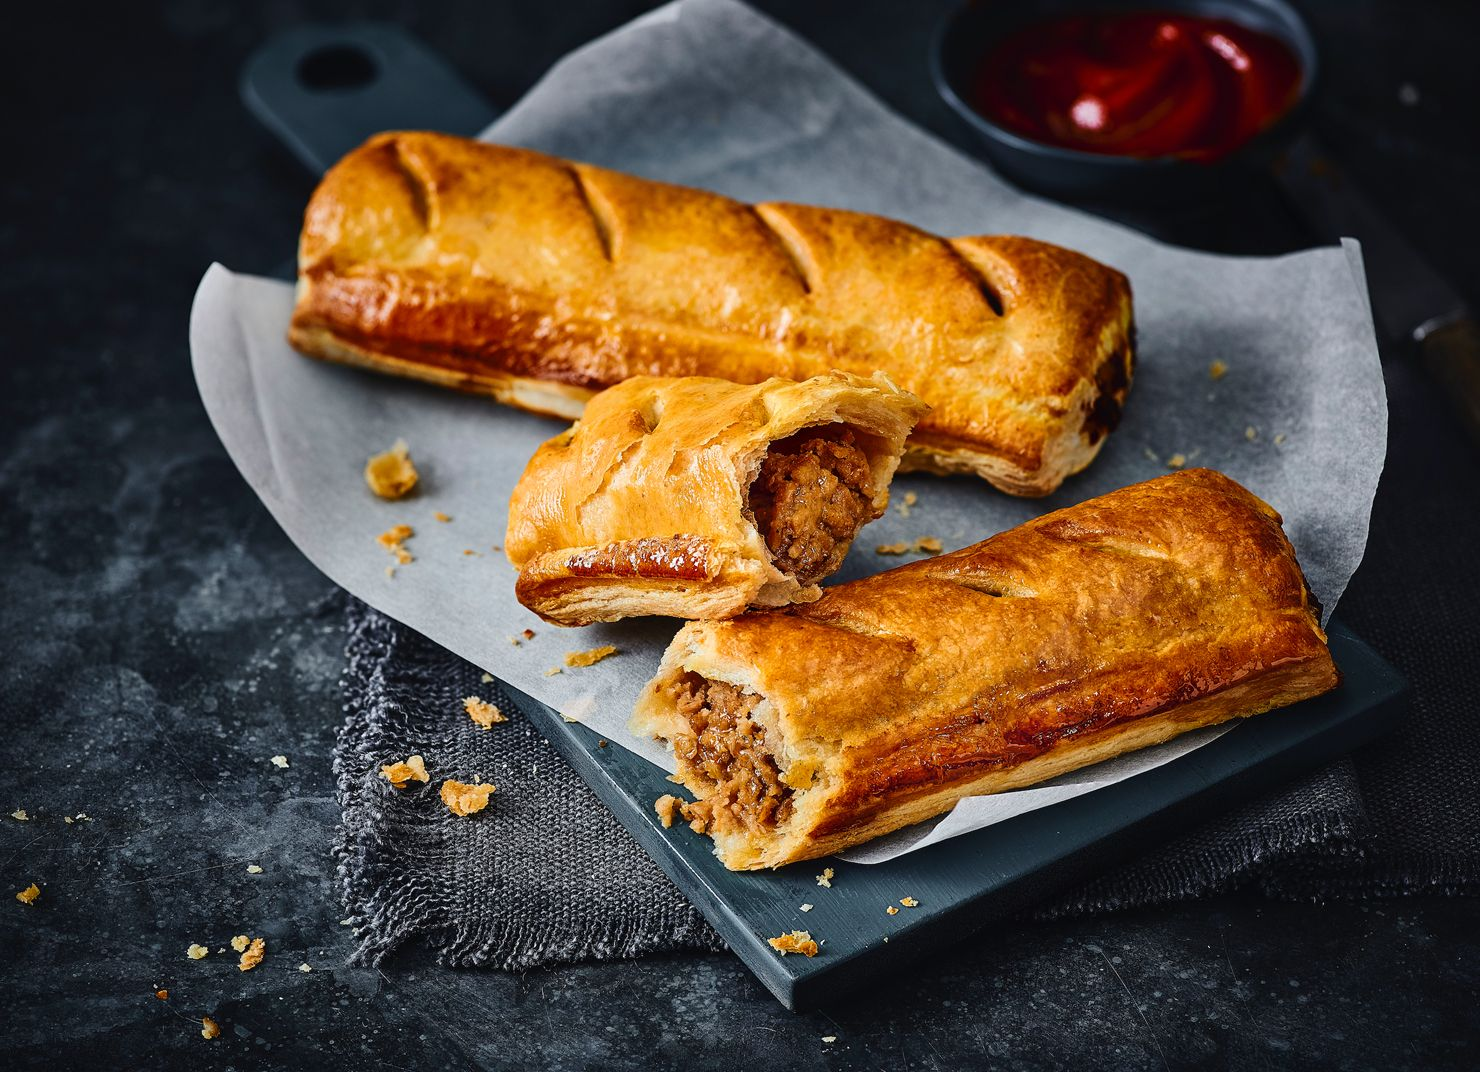 You can now buy hot vegan 'sausage' rolls at Marks & Spencer